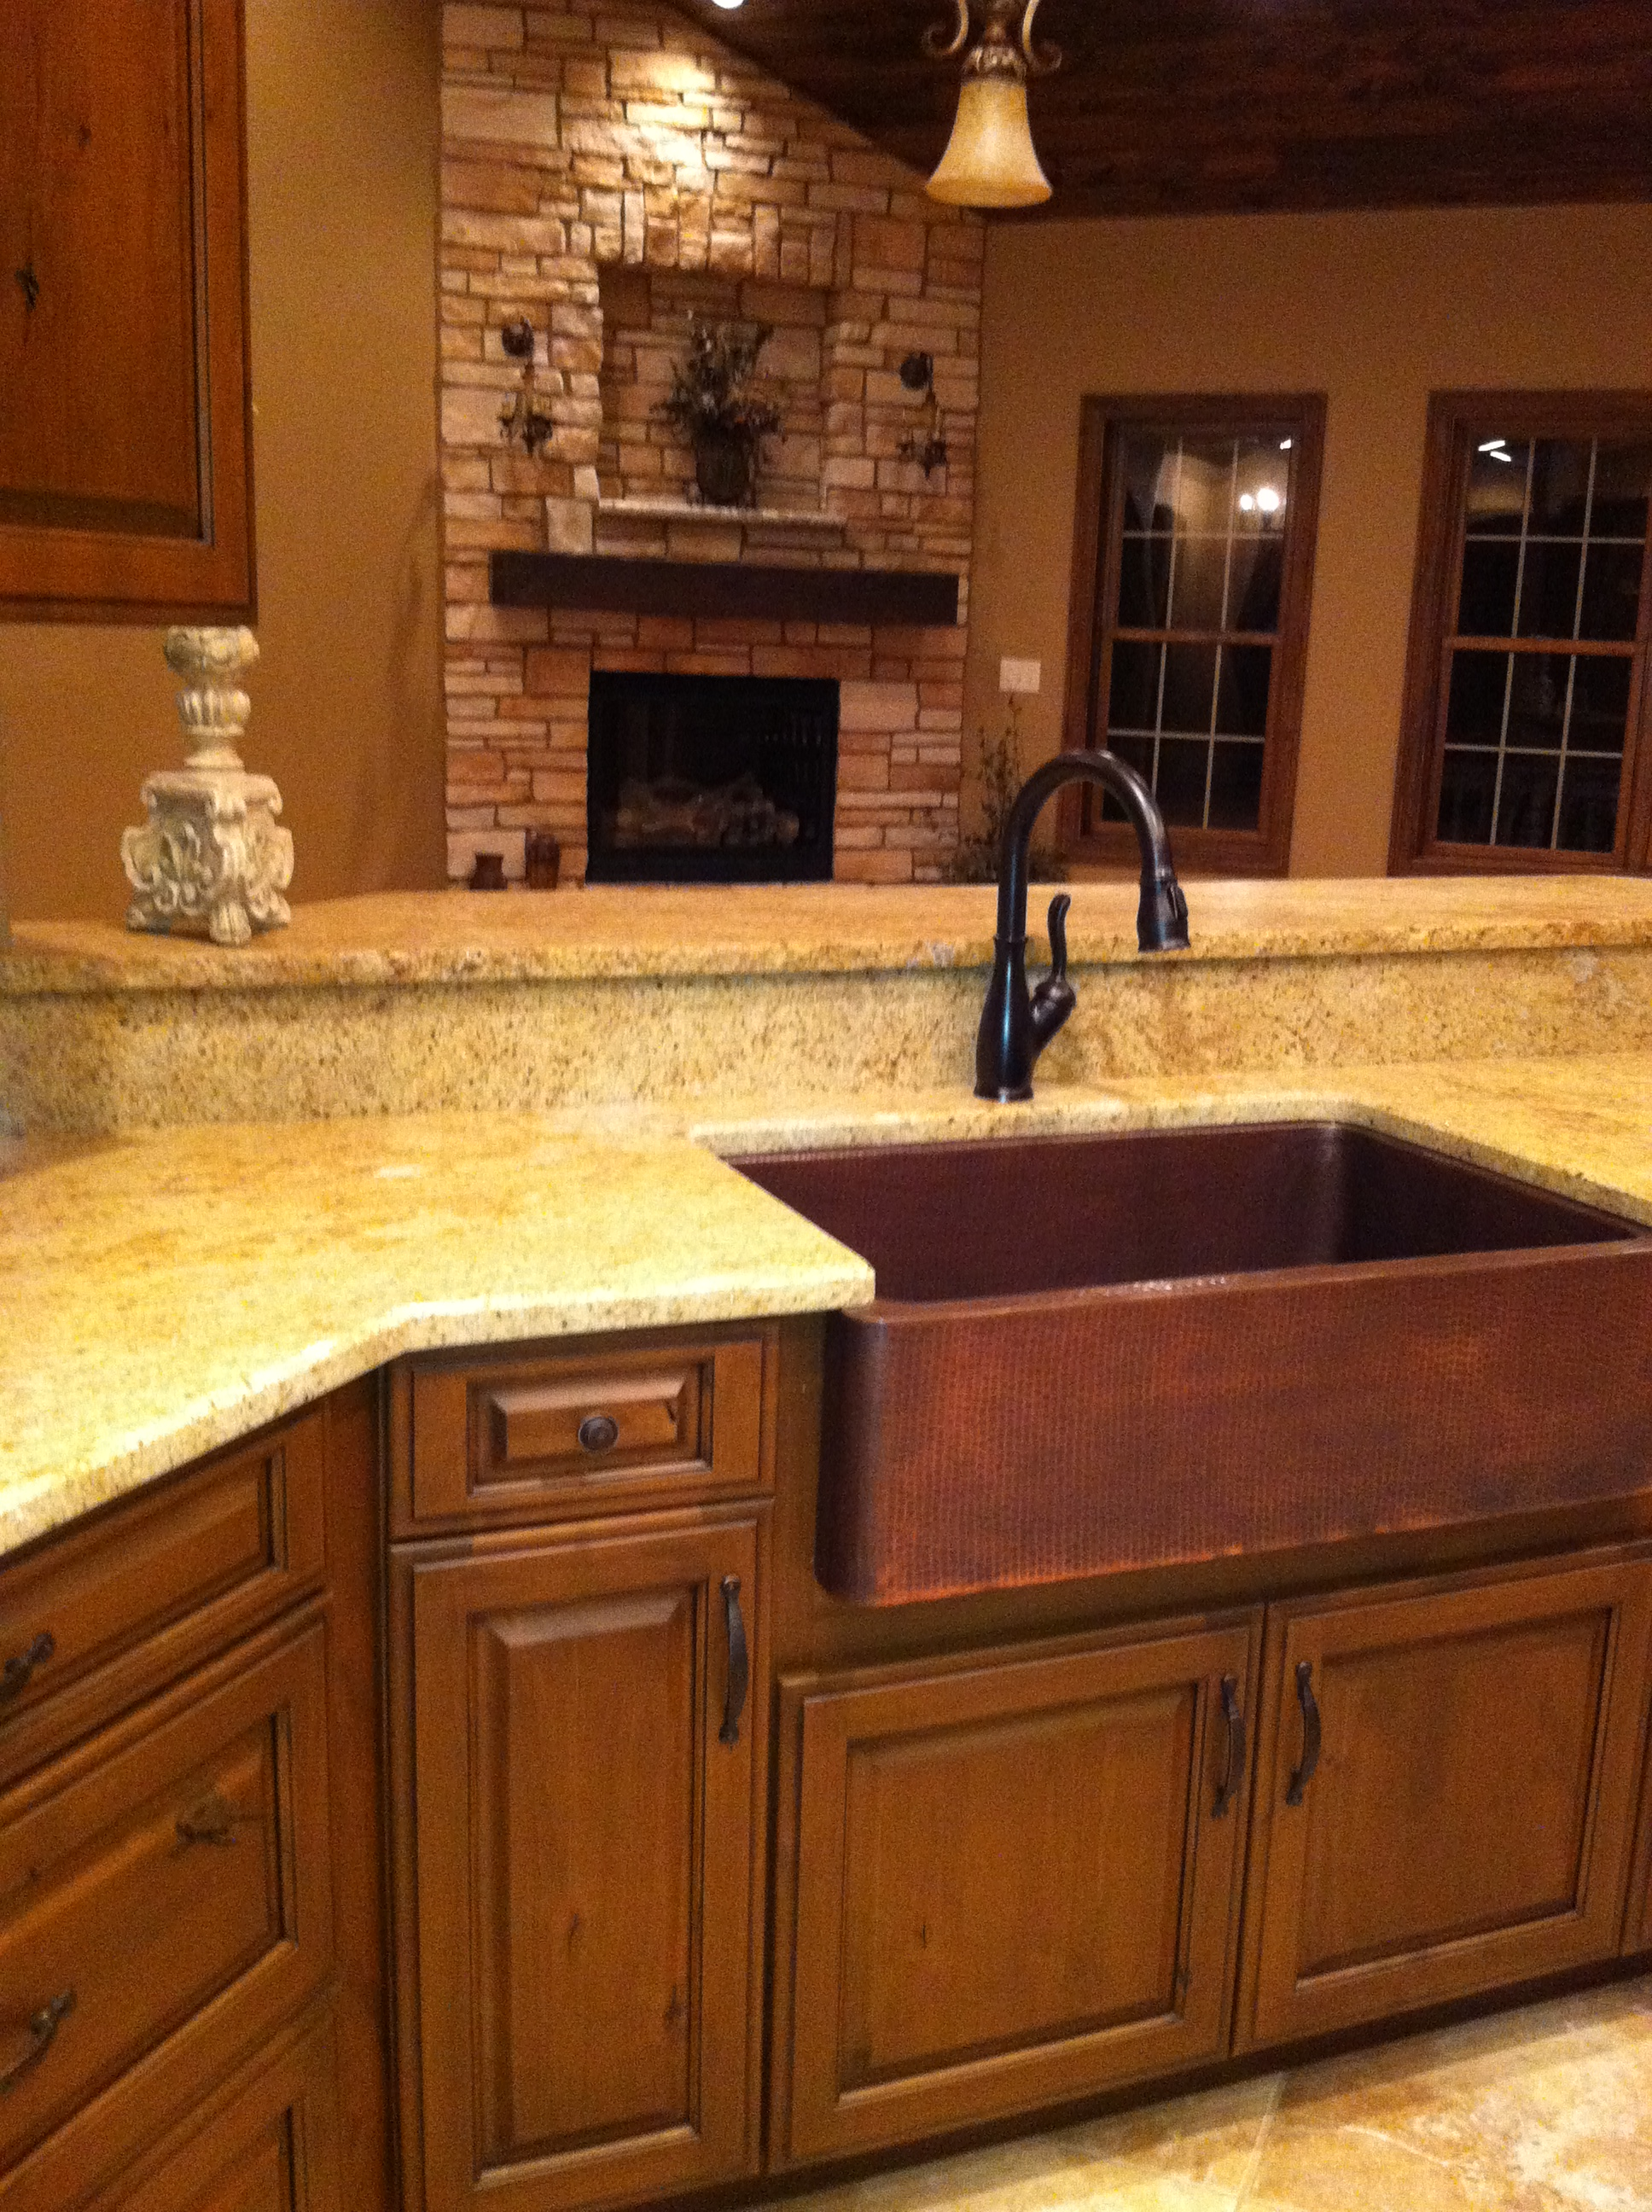 rectangle brown apron sink on brown wooden kitchen cabinet with black faucet on white marble countertop for kitchen decor ideas